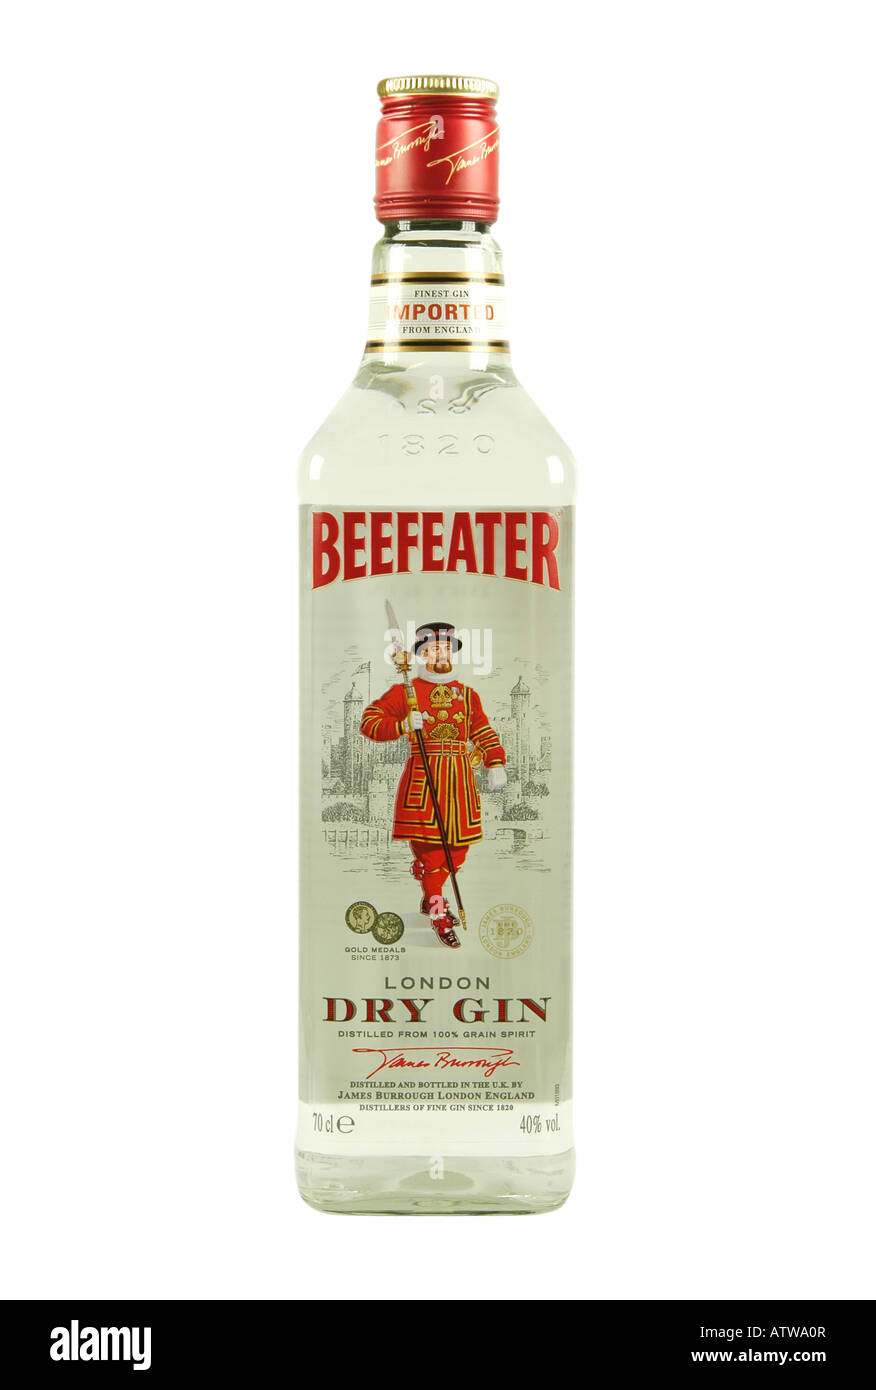 Beefeater London Dry Gin Flasche Stockfoto Bild 16395238 Alamy